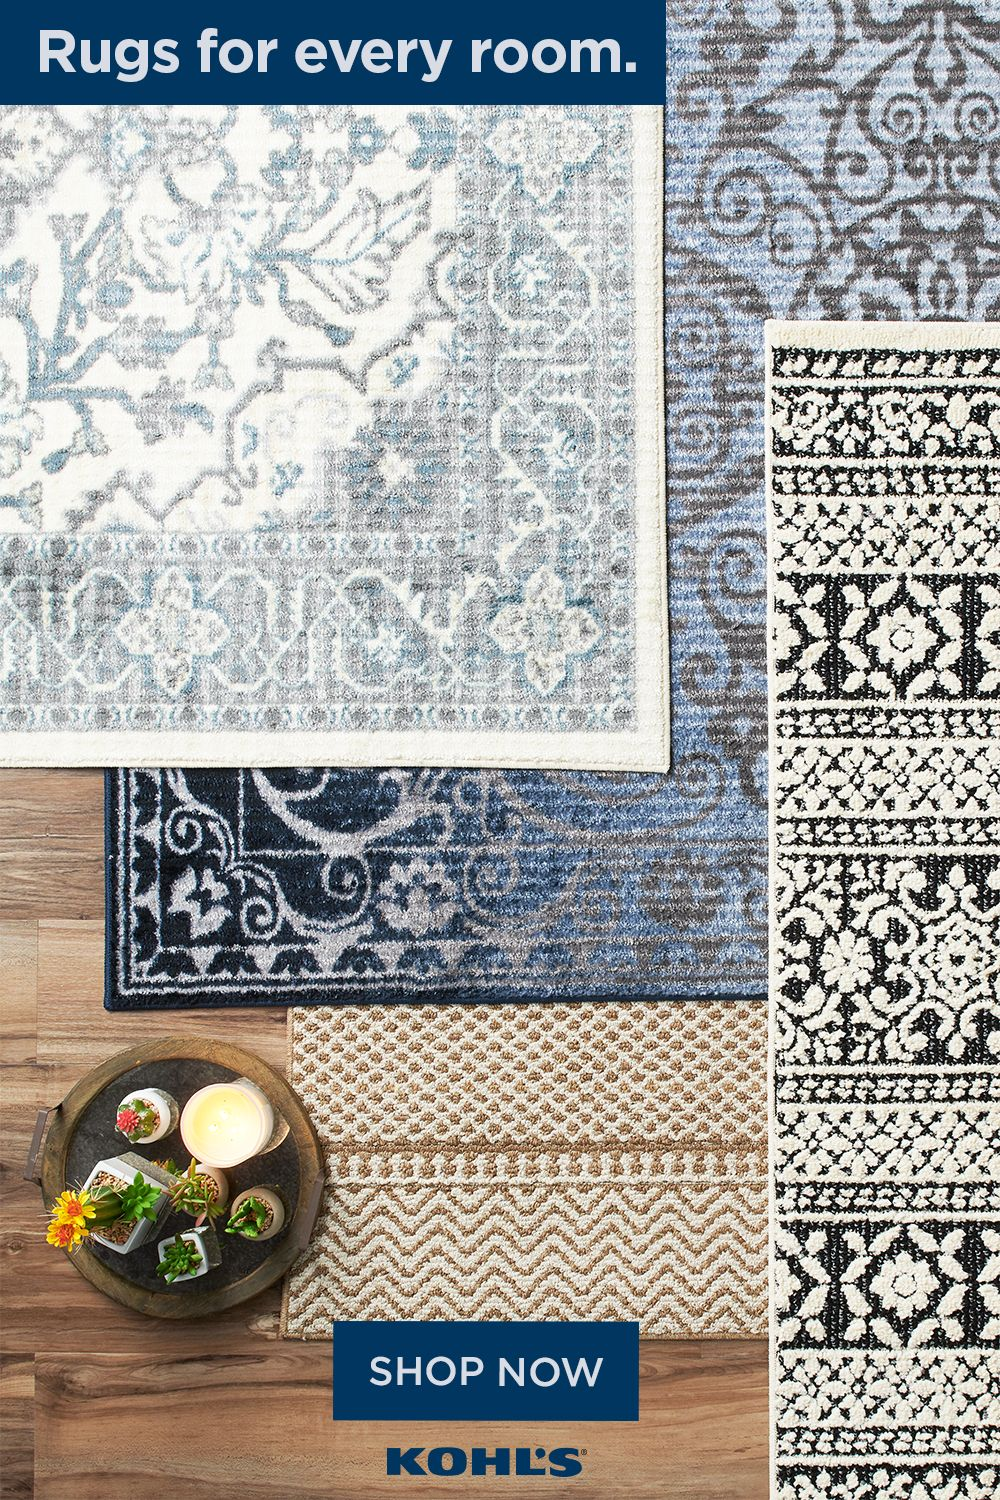 Find New Rugs For Any And Every Room At Kohl S And Now S The Perfect Time To Shop Select Rugs From Maples Are 40 50 Off Refresh You Maples Rugs Decor Rugs